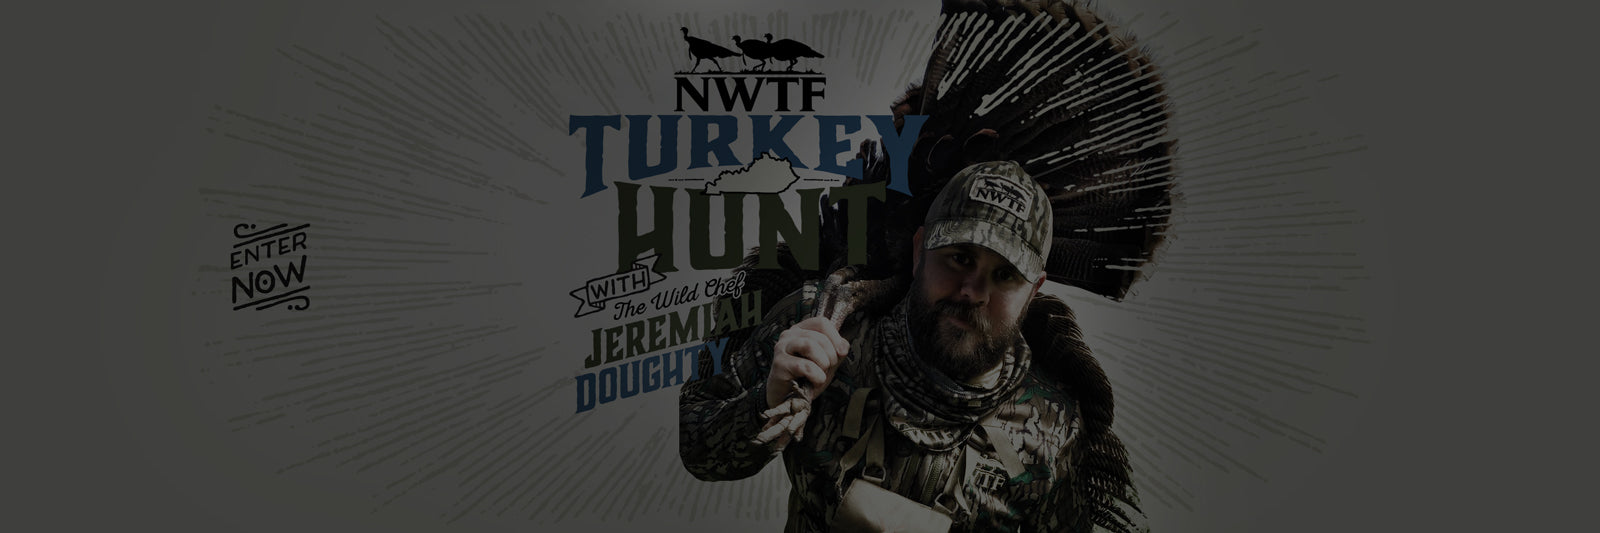 NWTF and GoWild Kentucky Turkey Hunt Sweepstakes